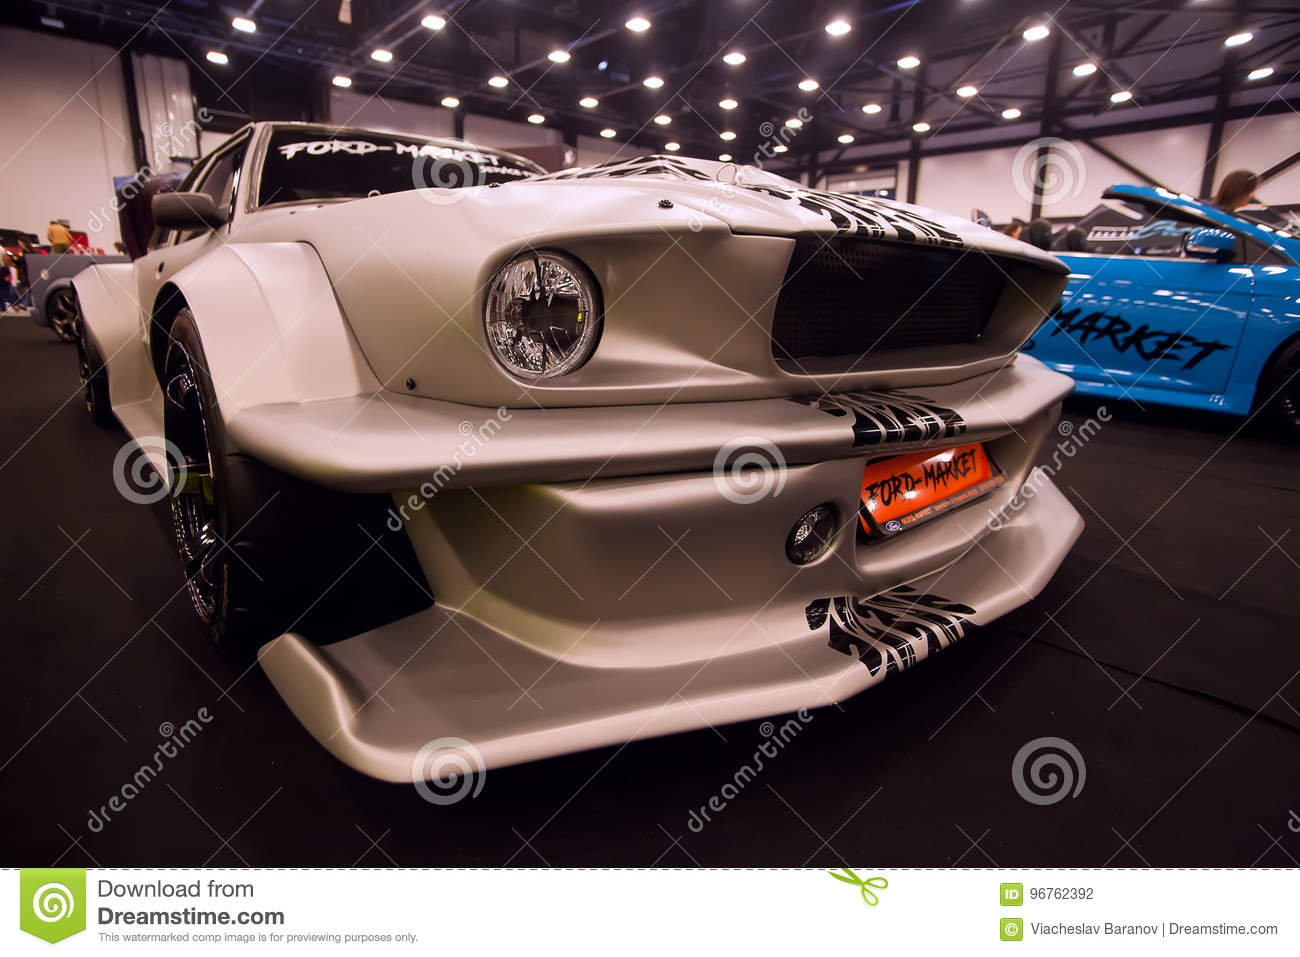 Saint petersburg russia jule 23 2017 front view of car ford mustang with tuning on royal auto show wide car fender and bumper